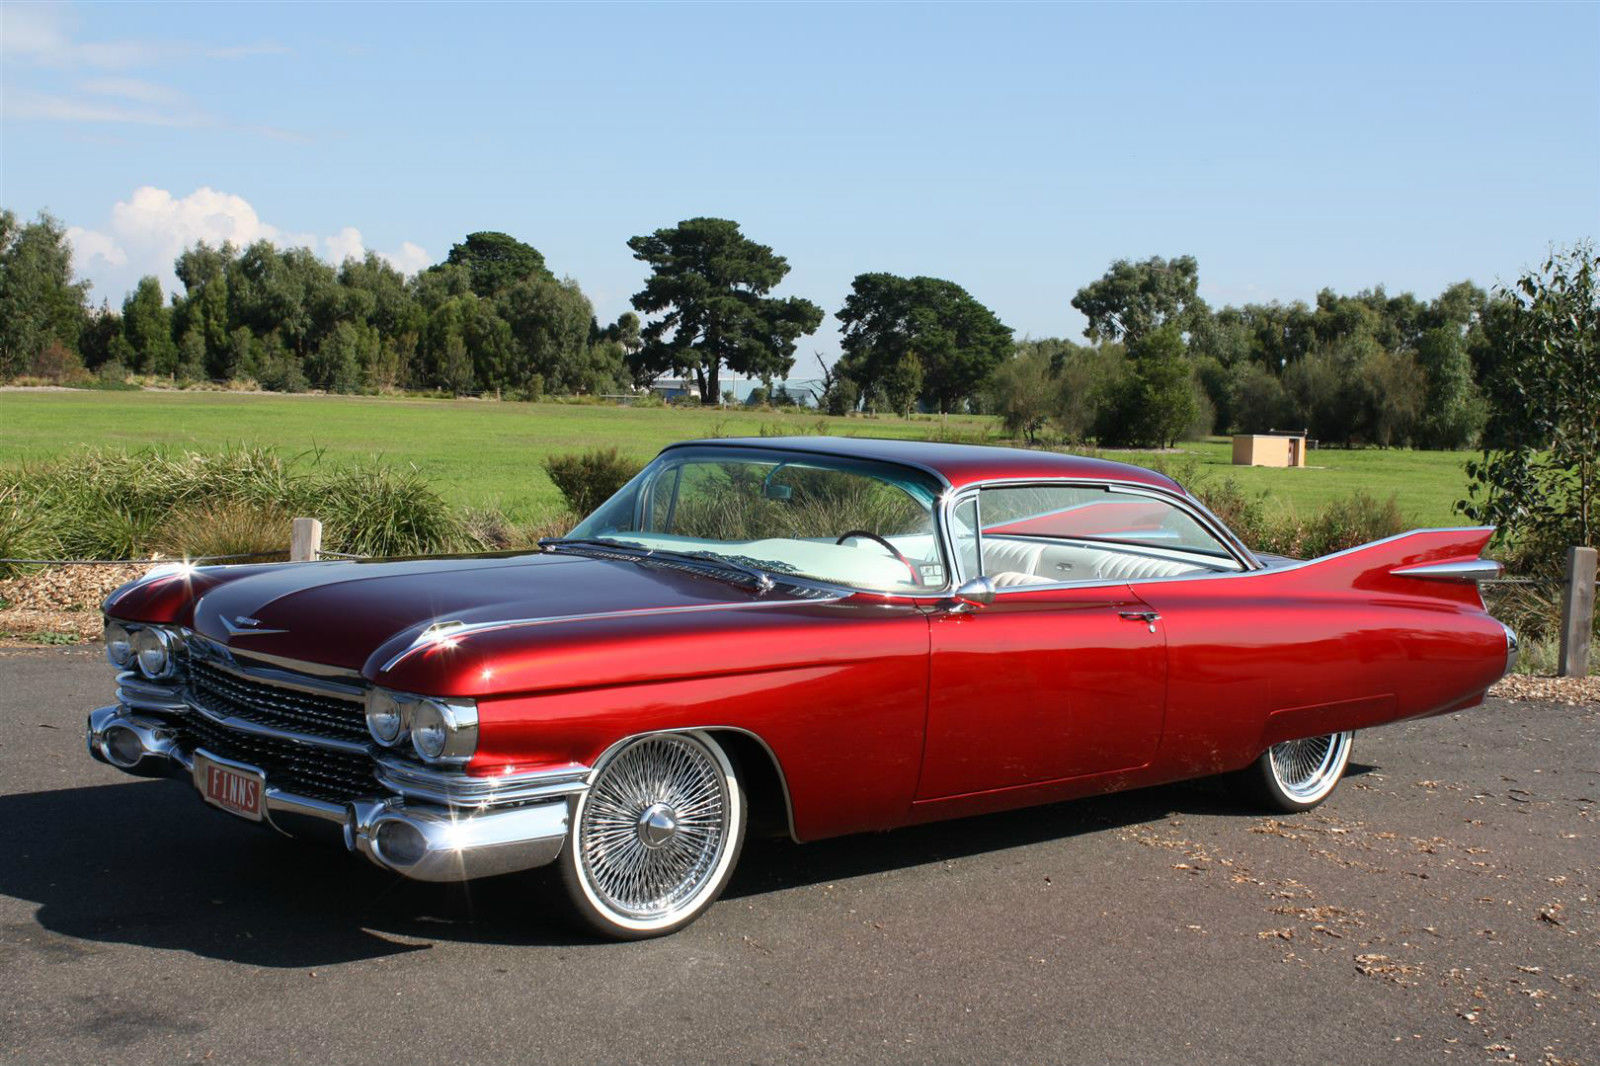 1959 cadillac series 62 coupe deville candy red custom built show car 390cbi v8 classic. Black Bedroom Furniture Sets. Home Design Ideas